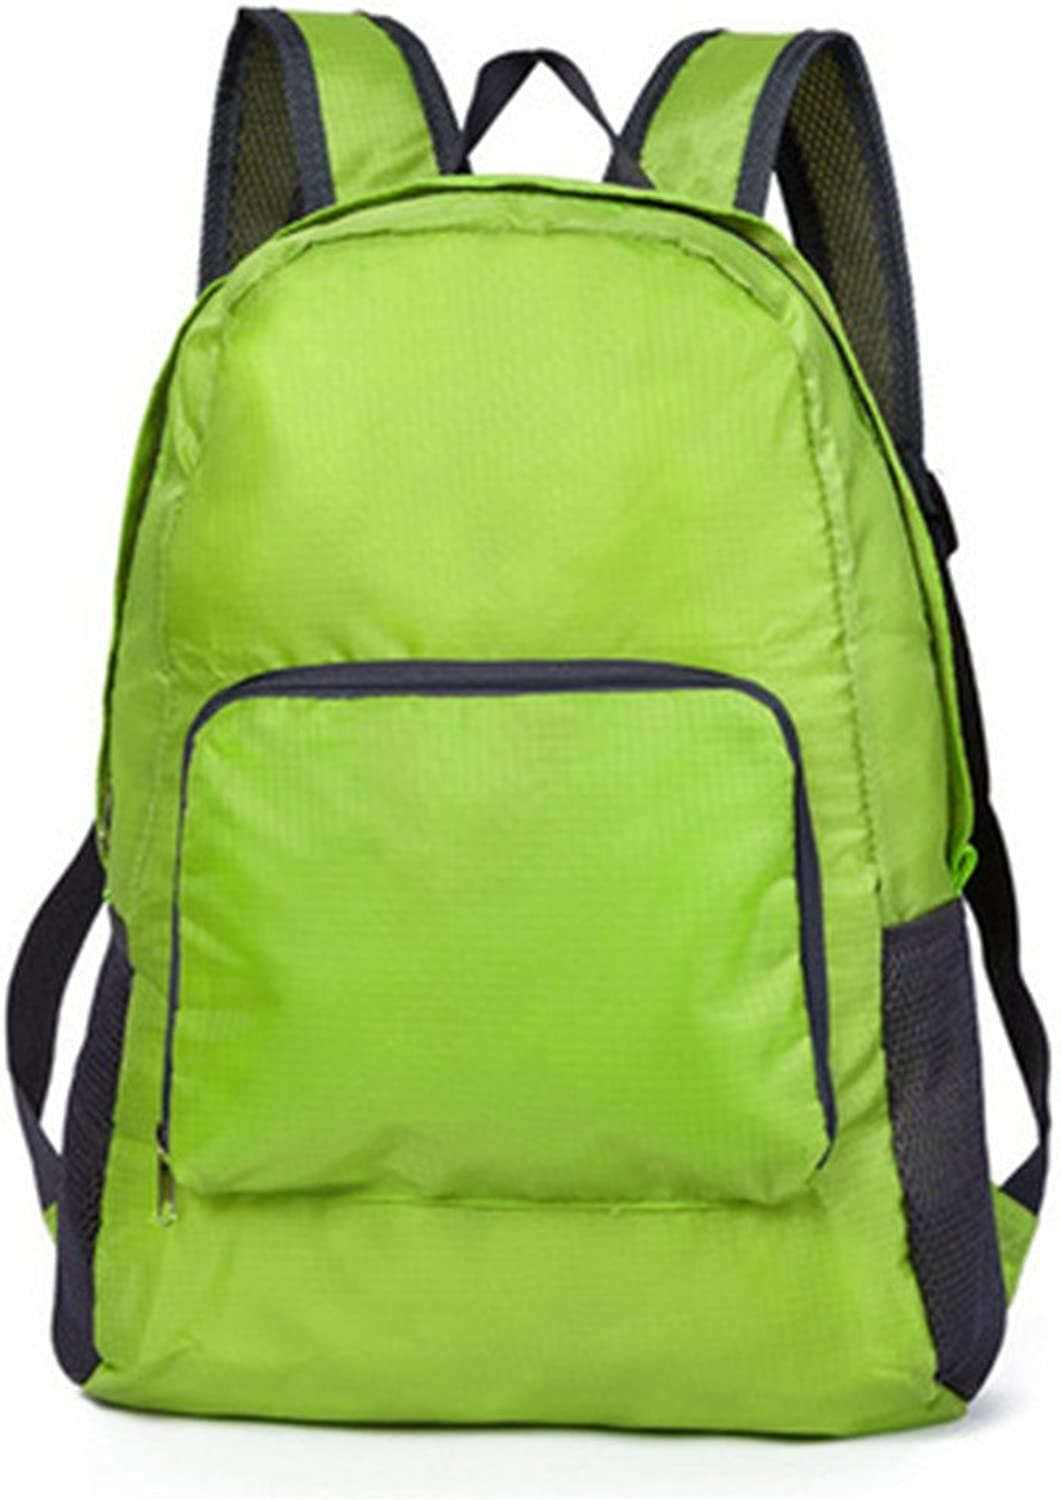 Small Handy Foldable Ultra Lightweight Packable Backpack Hiking Daypack